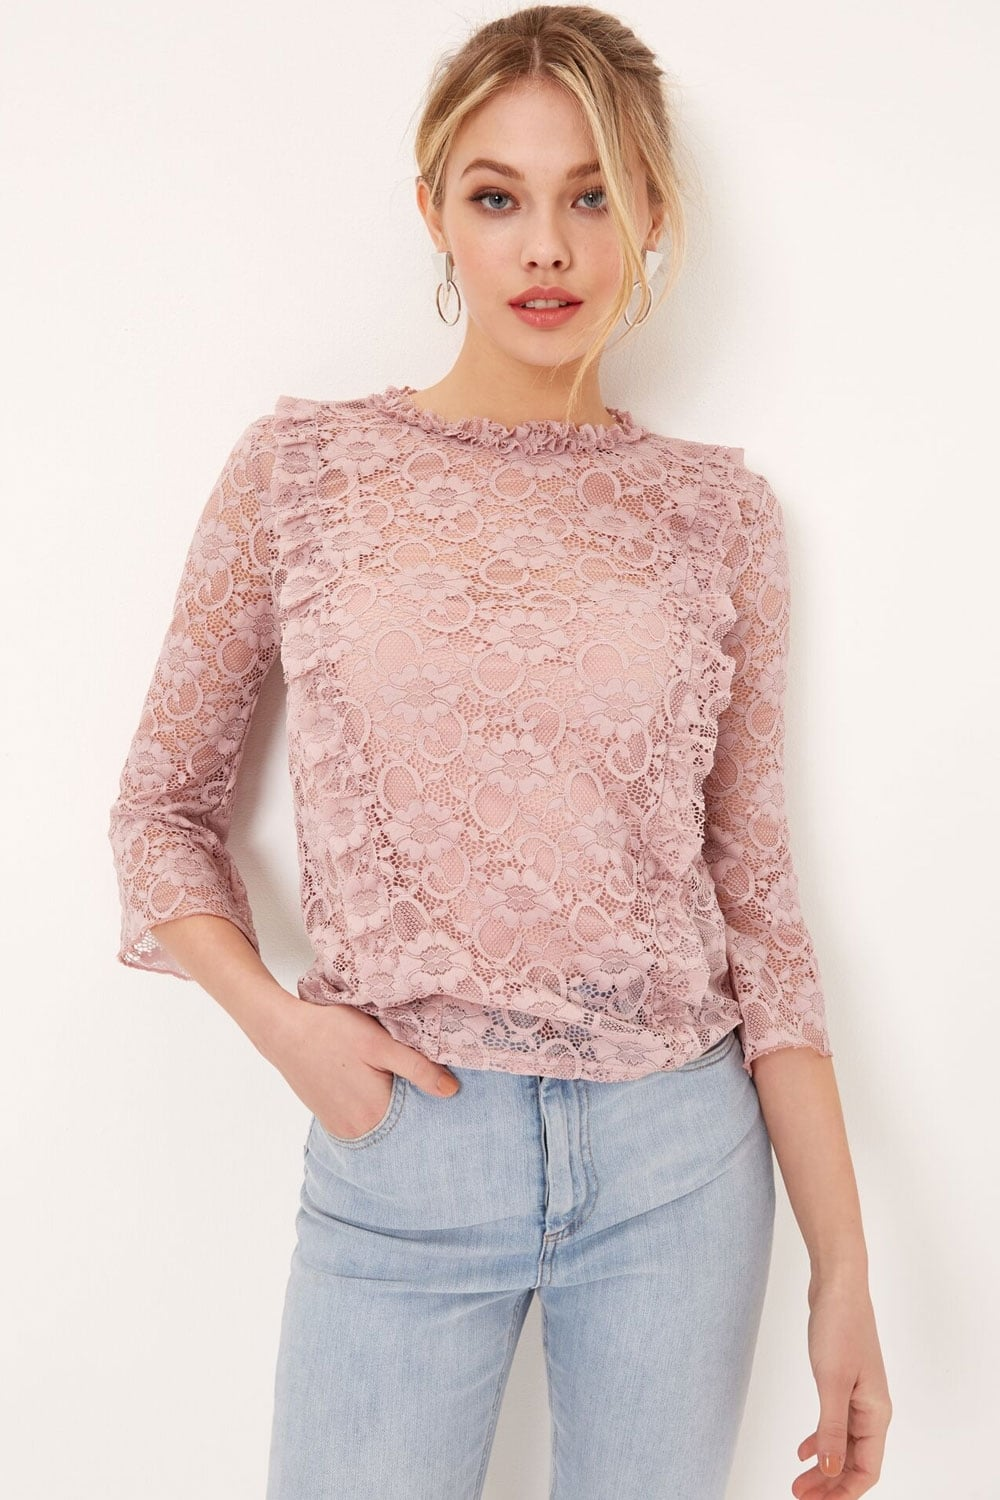 Outlet Girls On Film Pink Lace Top - Outlet Girls On Film ...